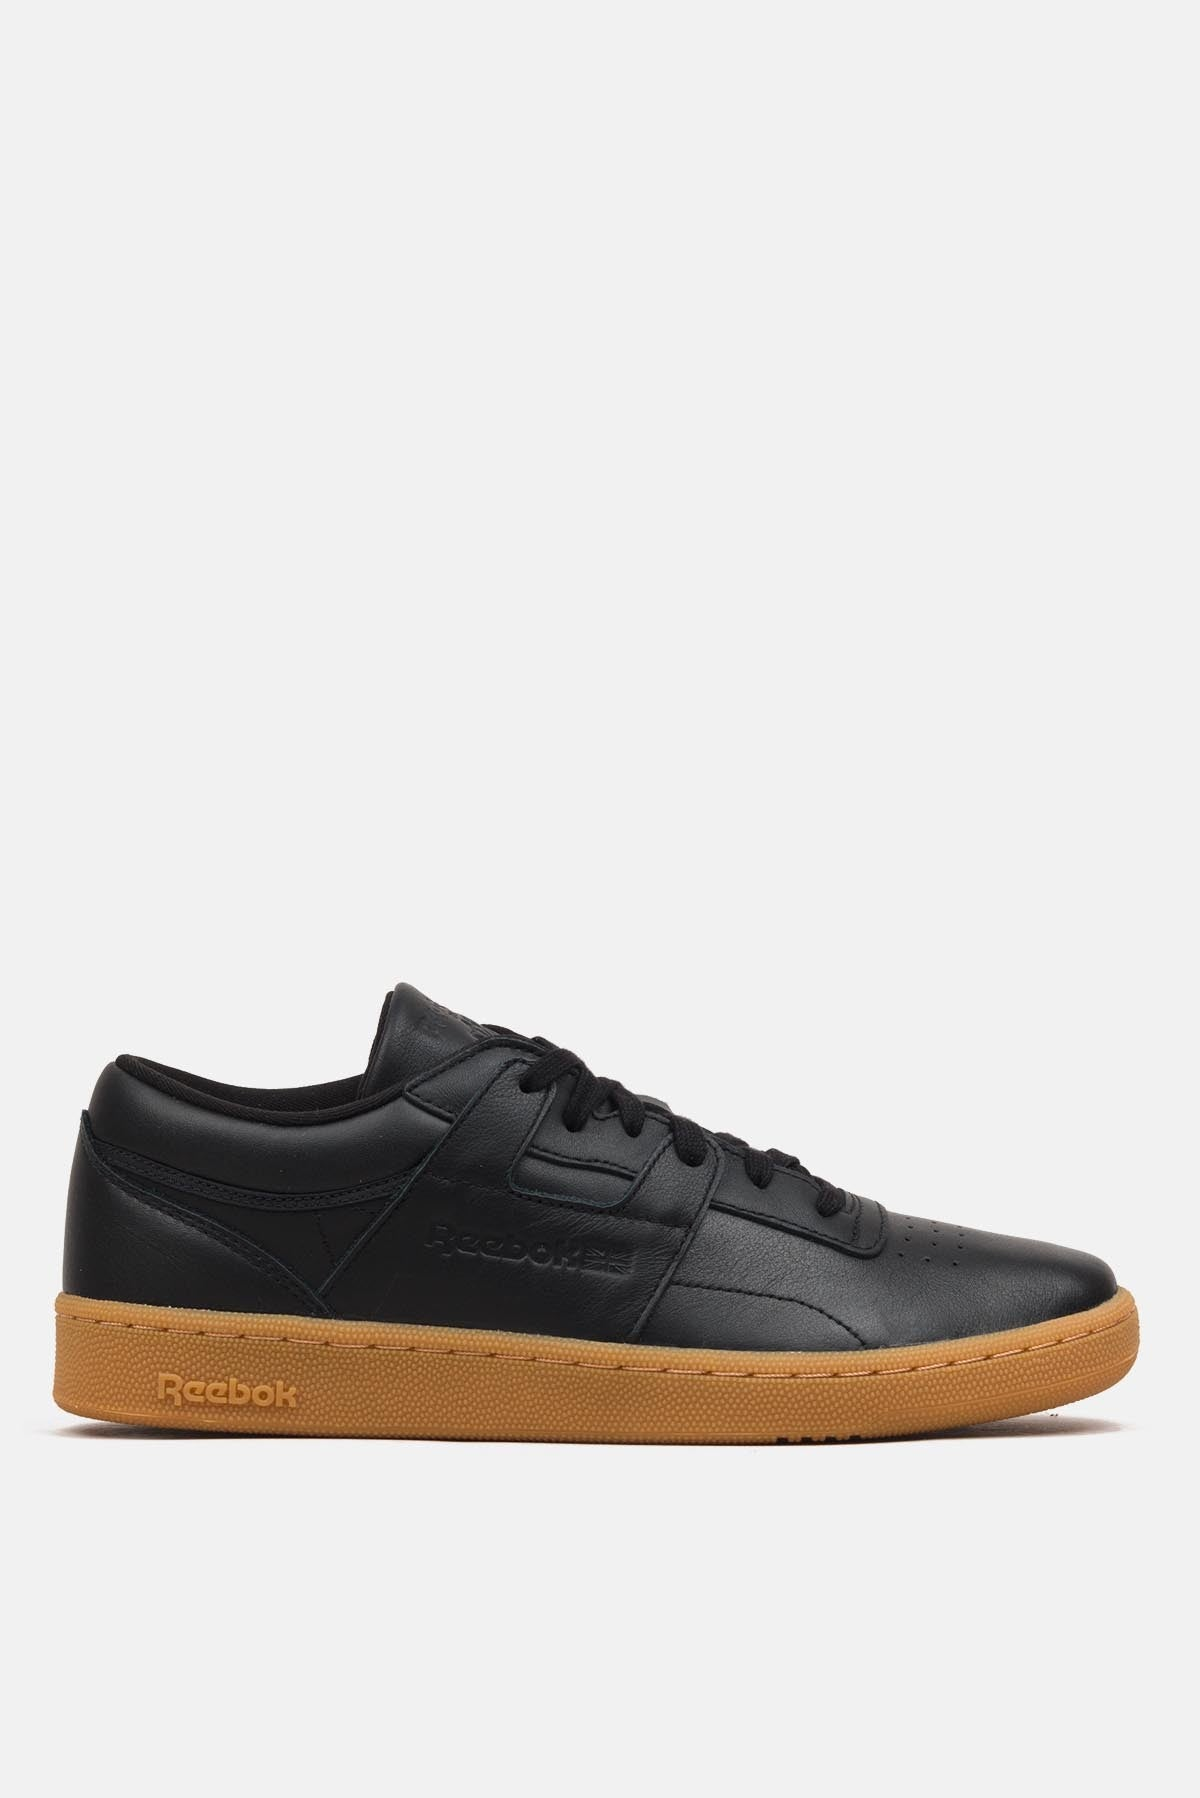 1b8a4033e5b Reebok Classics Club Workout Shoes available from Priory